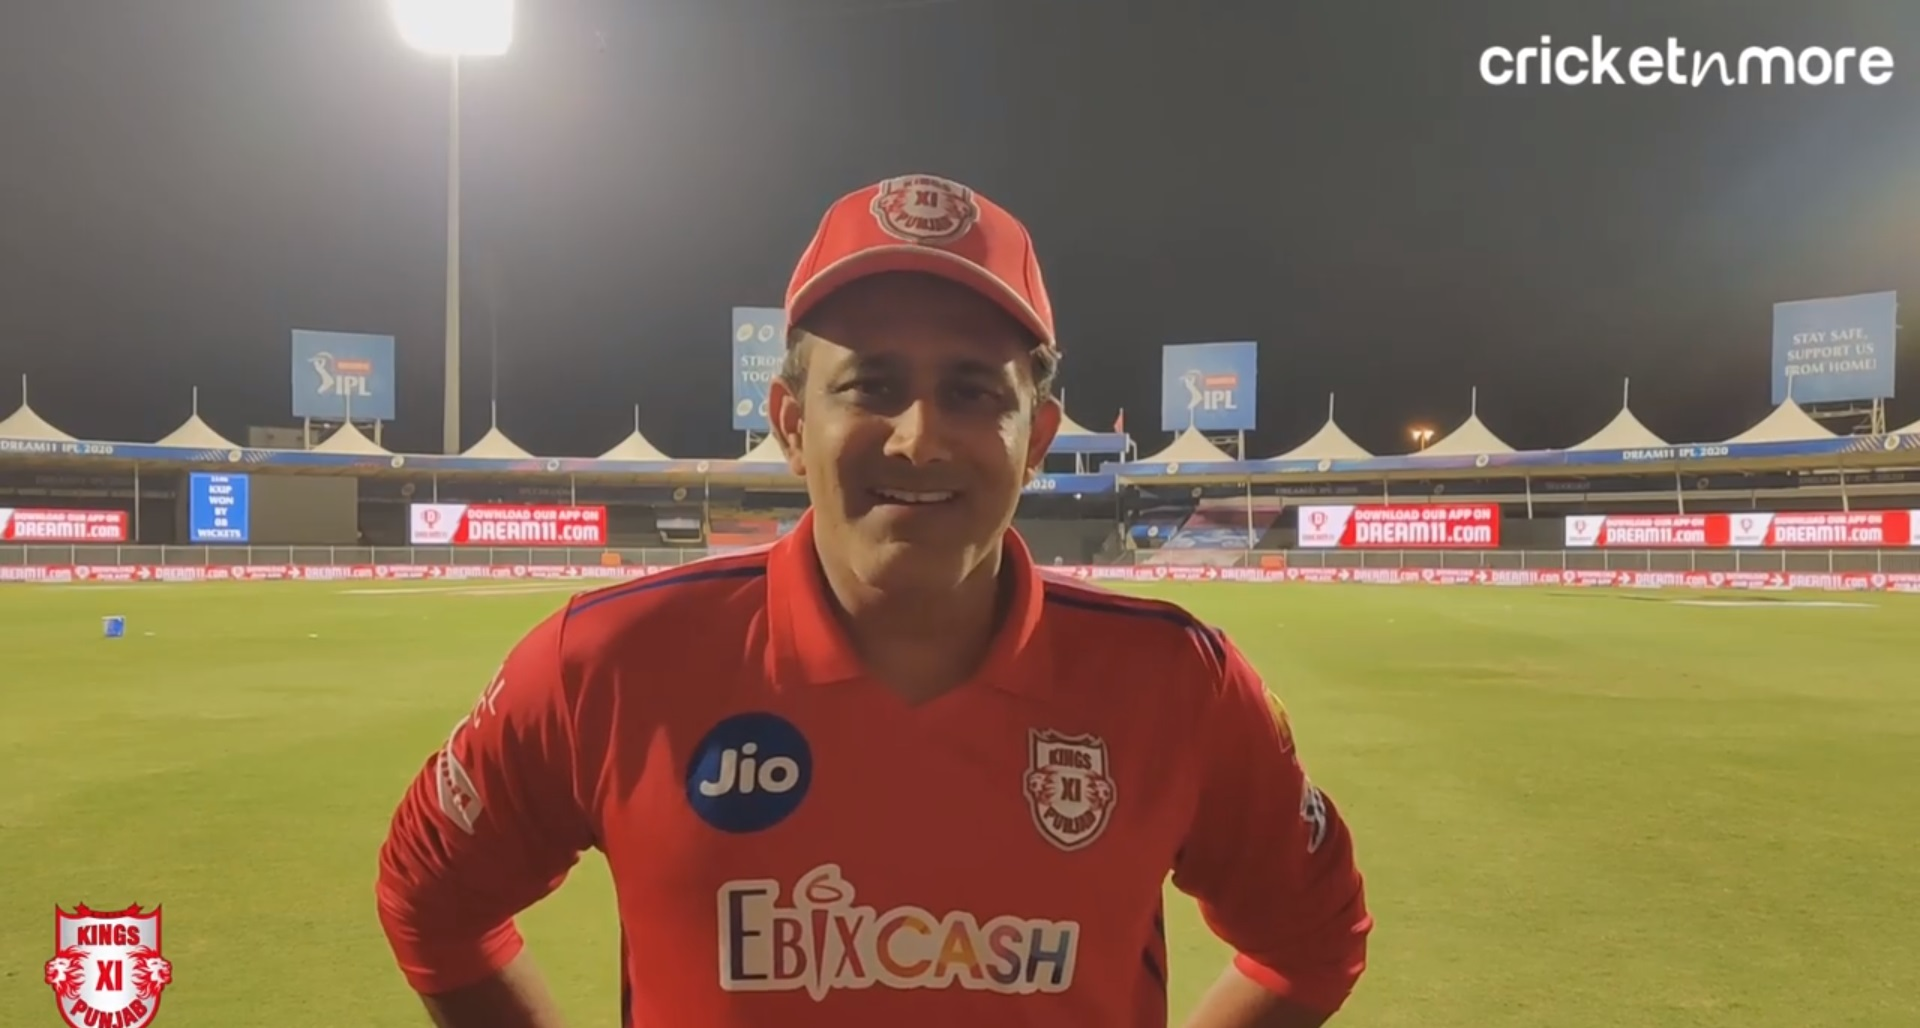 The Turnaround Was Really Important For Us - KXIP Coach Kumble After The Win Against RCB